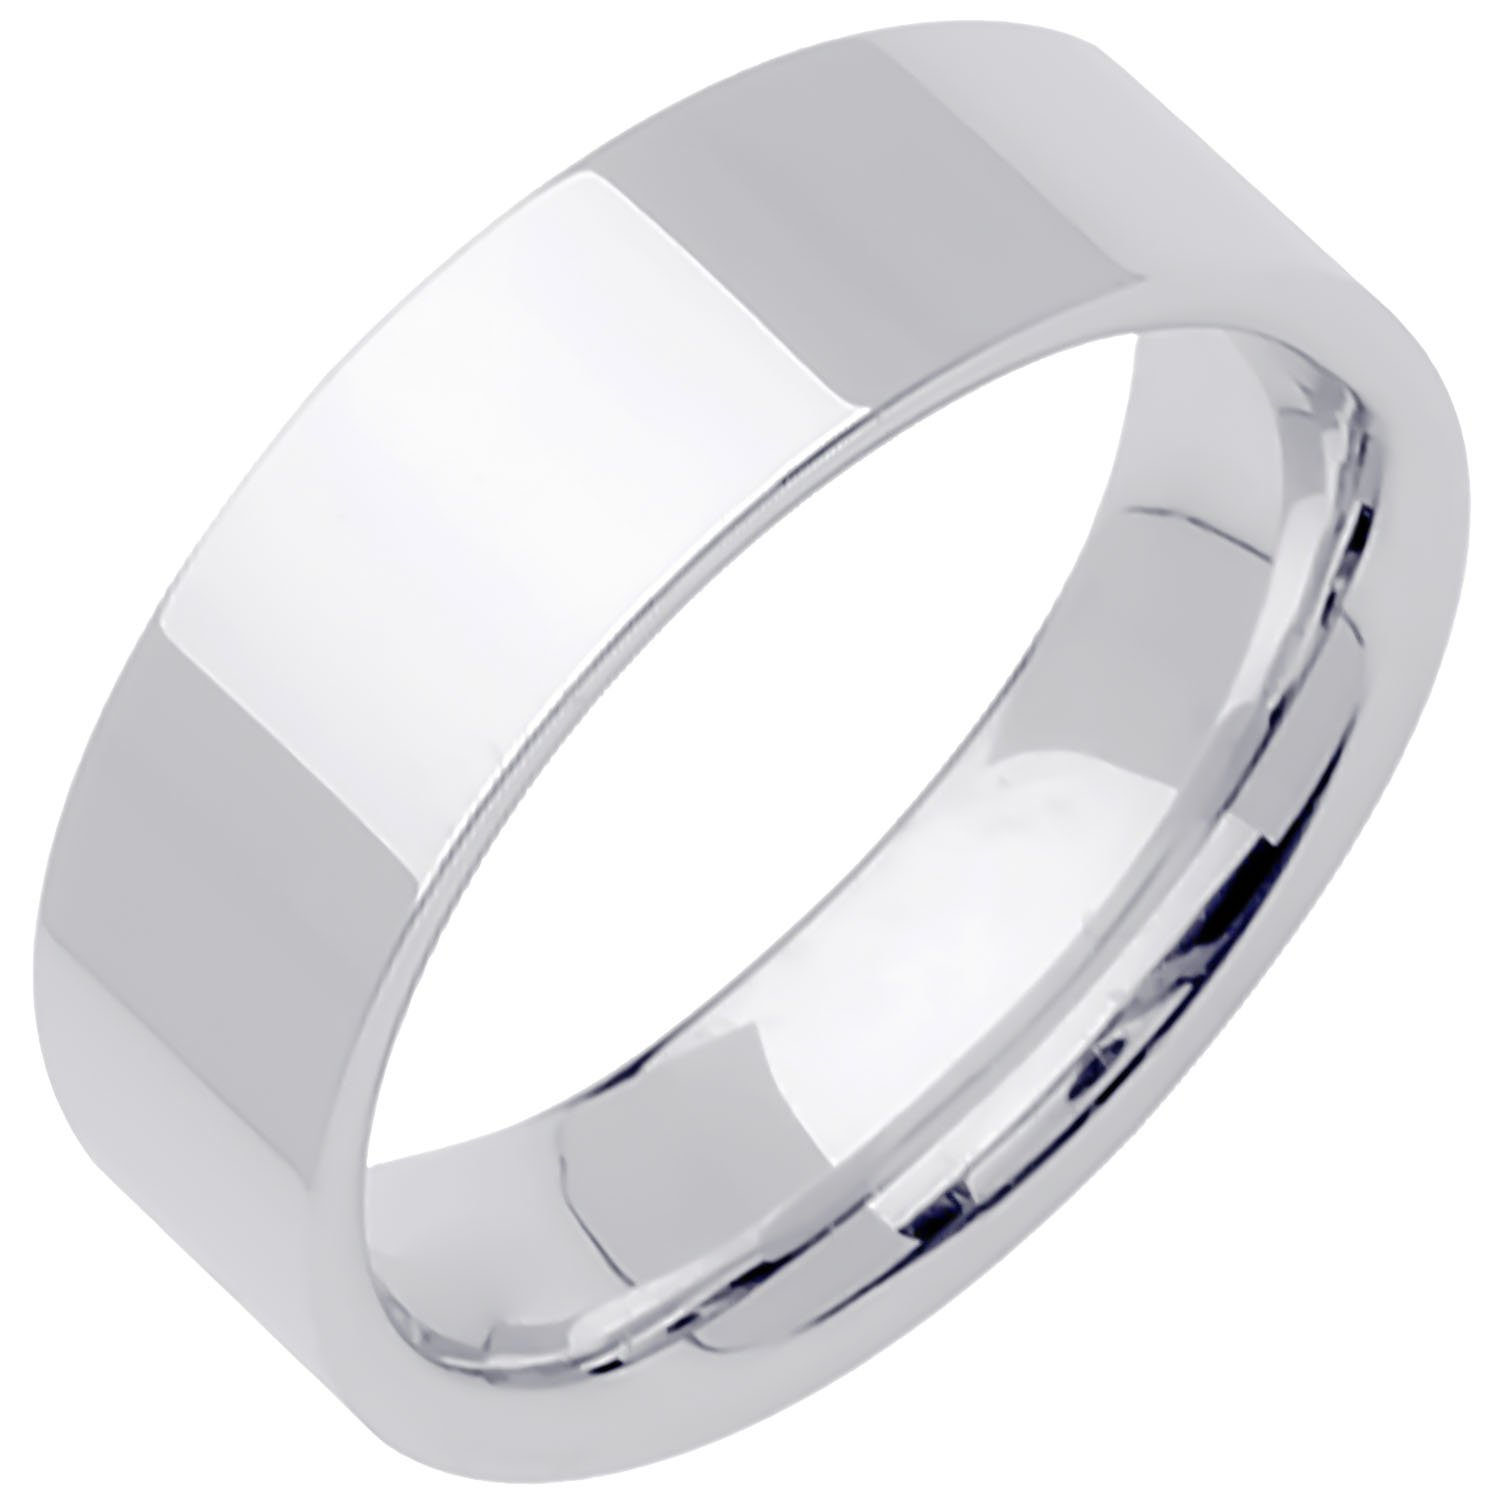 18K White Gold Traditional Top Flat Women's Comfort Fit Wedding Band (8mm) Size-5c1